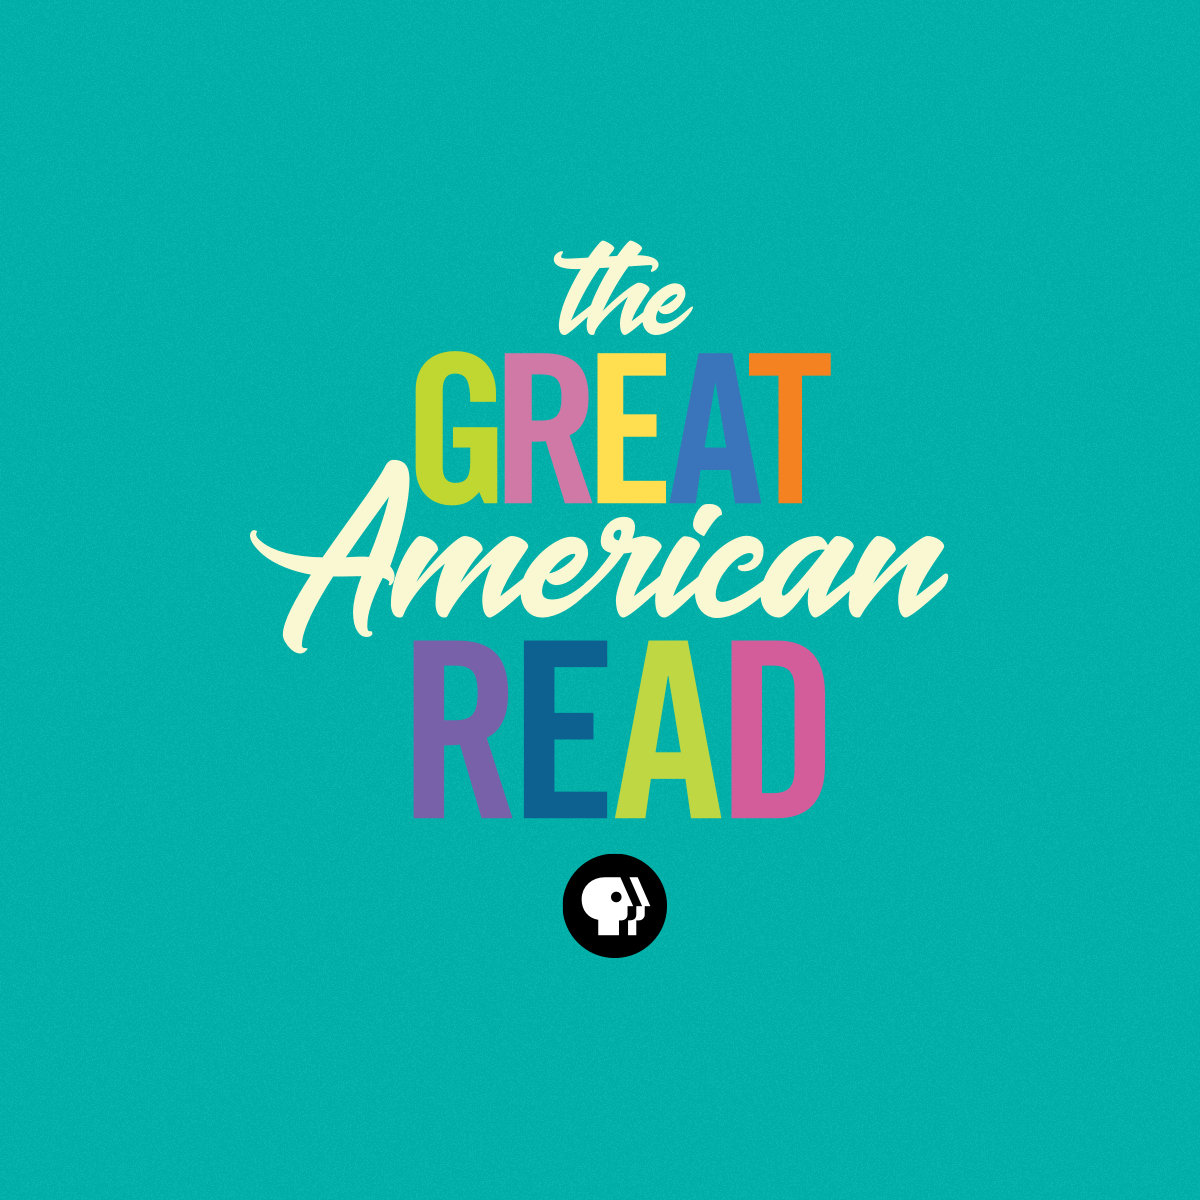 5 Books I Want to Read After Watching Great American Read